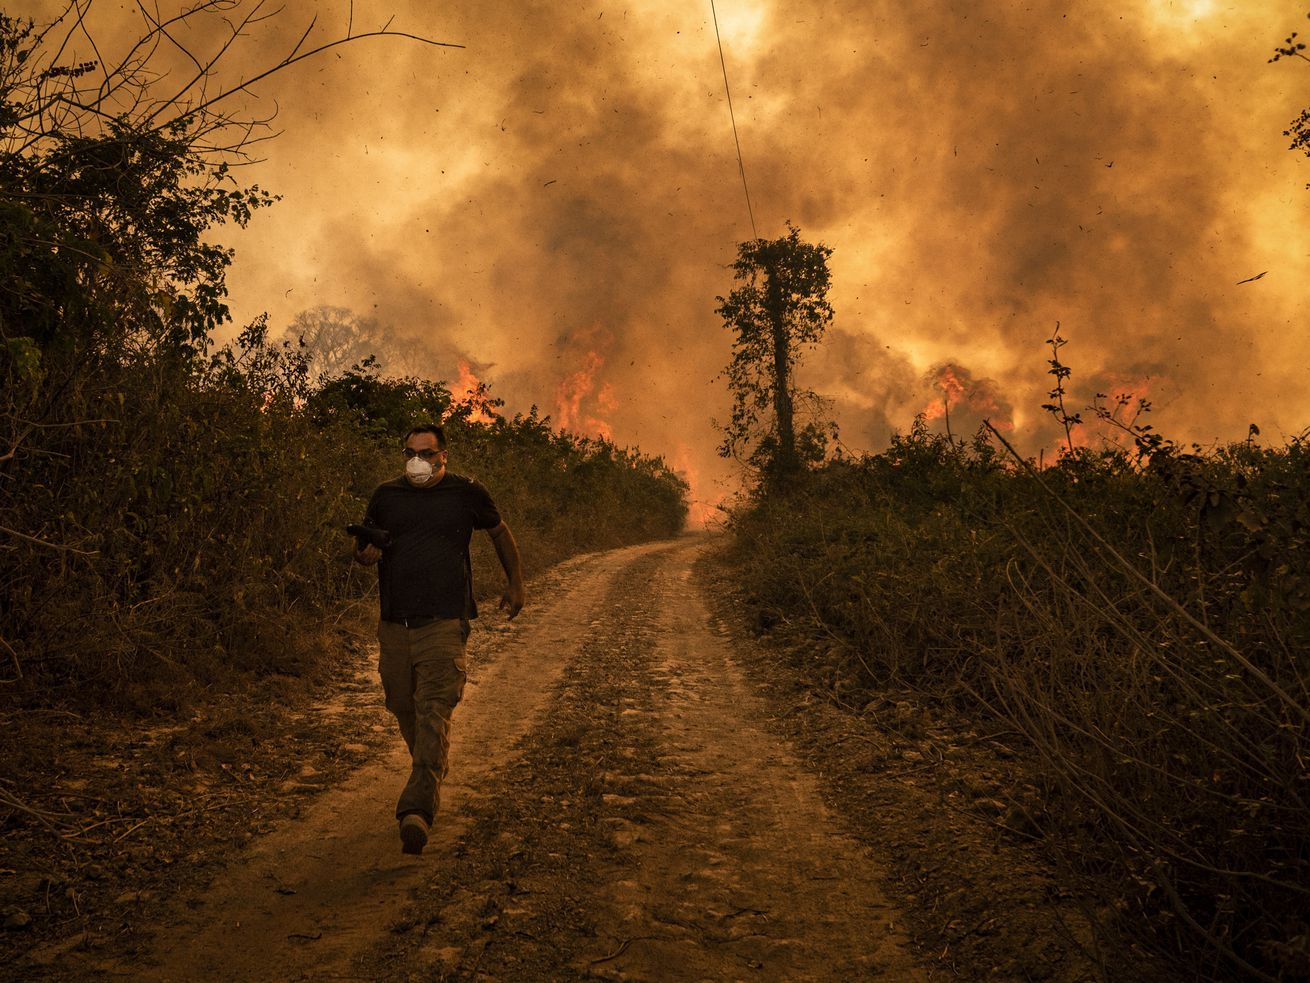 A man wearing a face mask walks down a path away from fire and smoke behind him